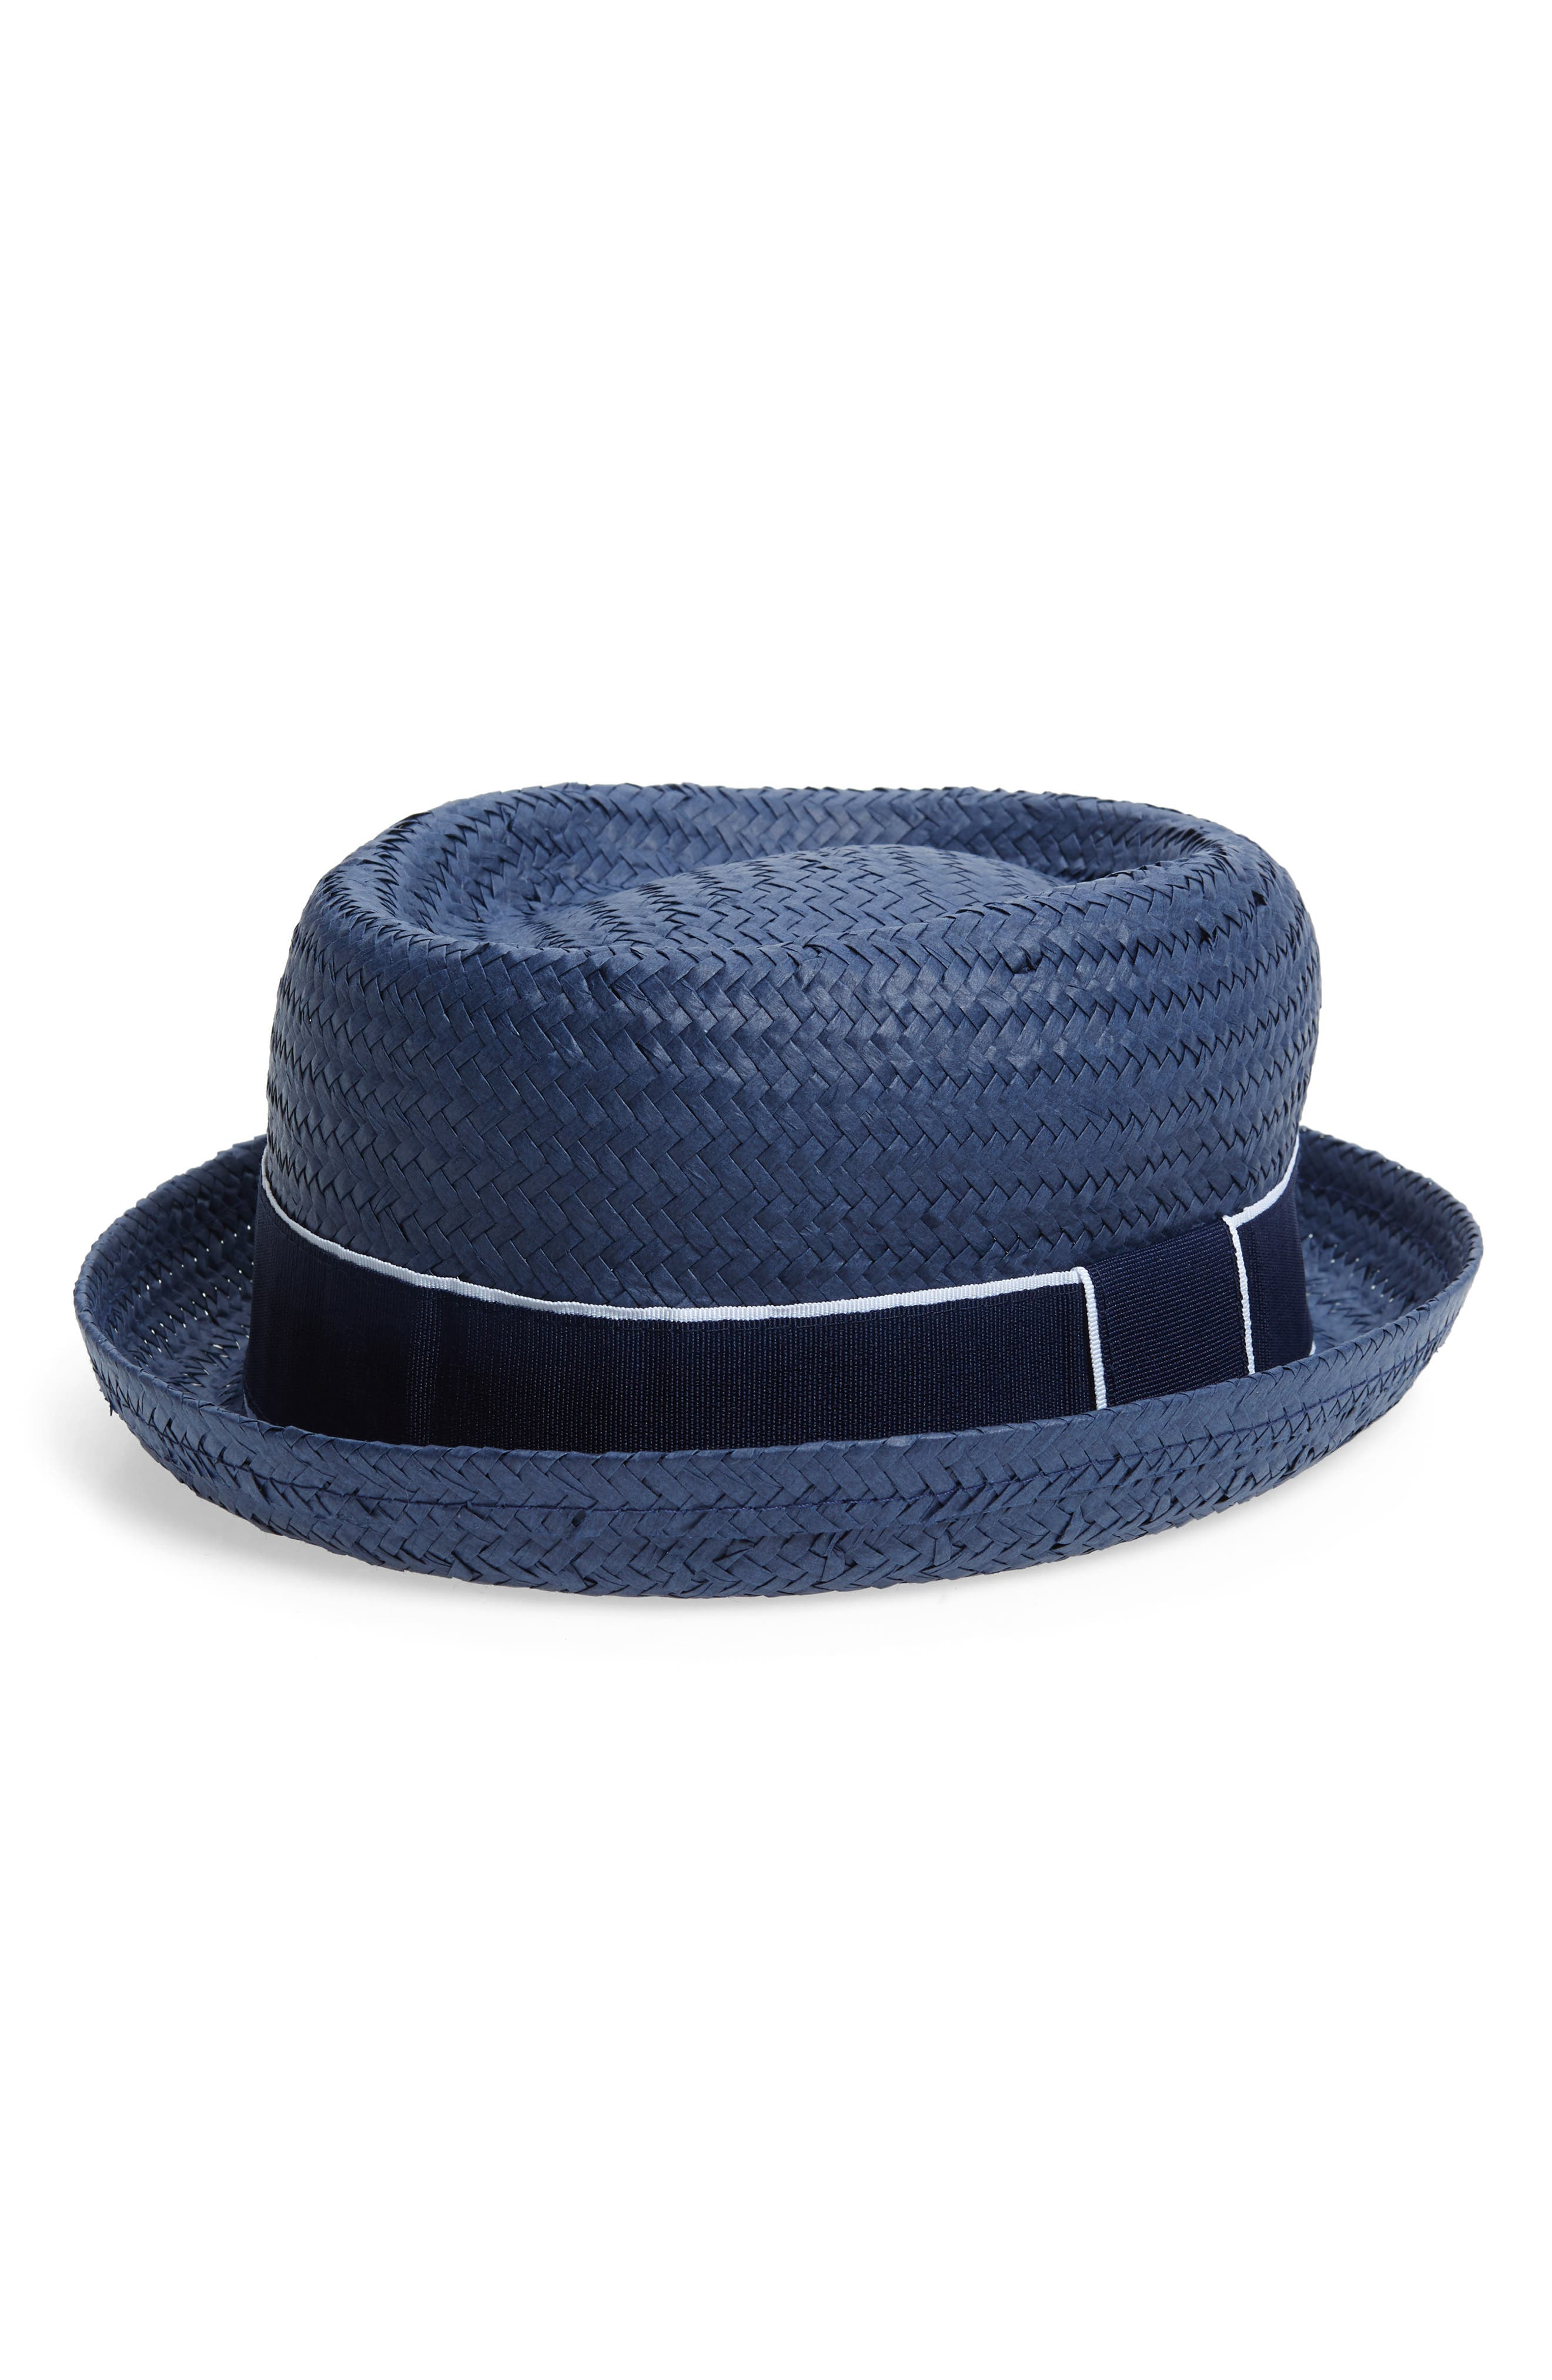 FITS Straw Boater Hat